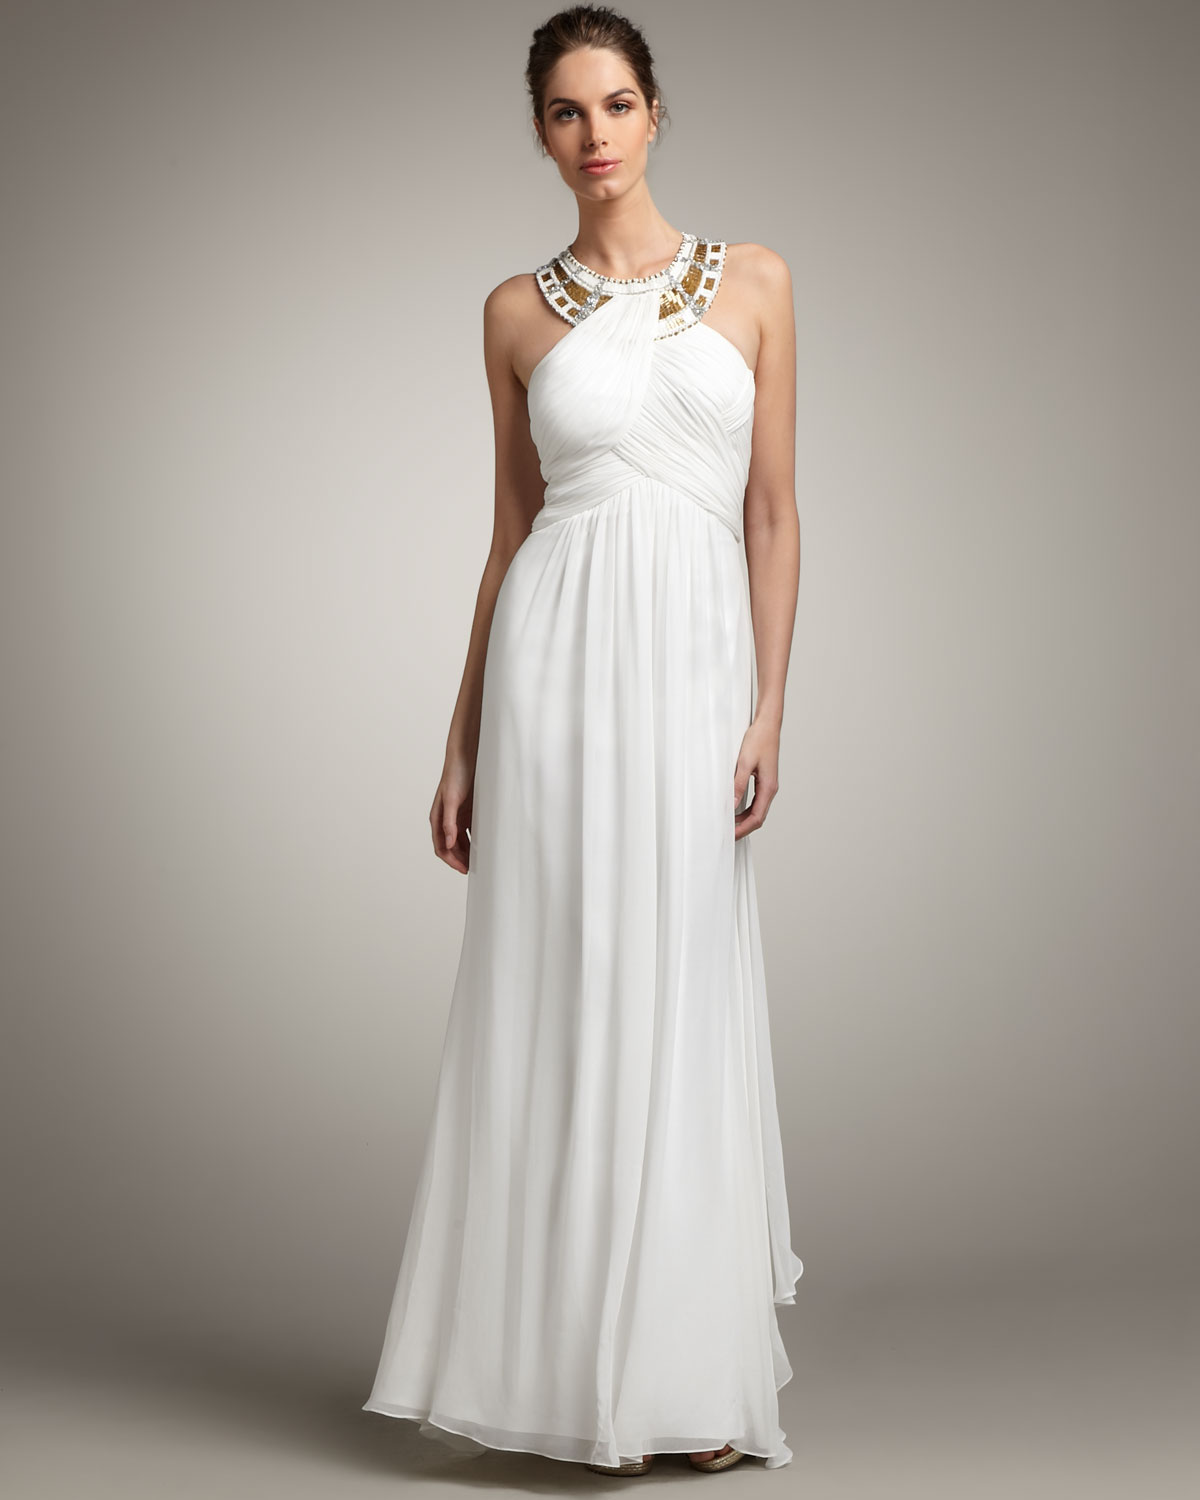 Lyst - Mandalay Beaded Halter Gown in White